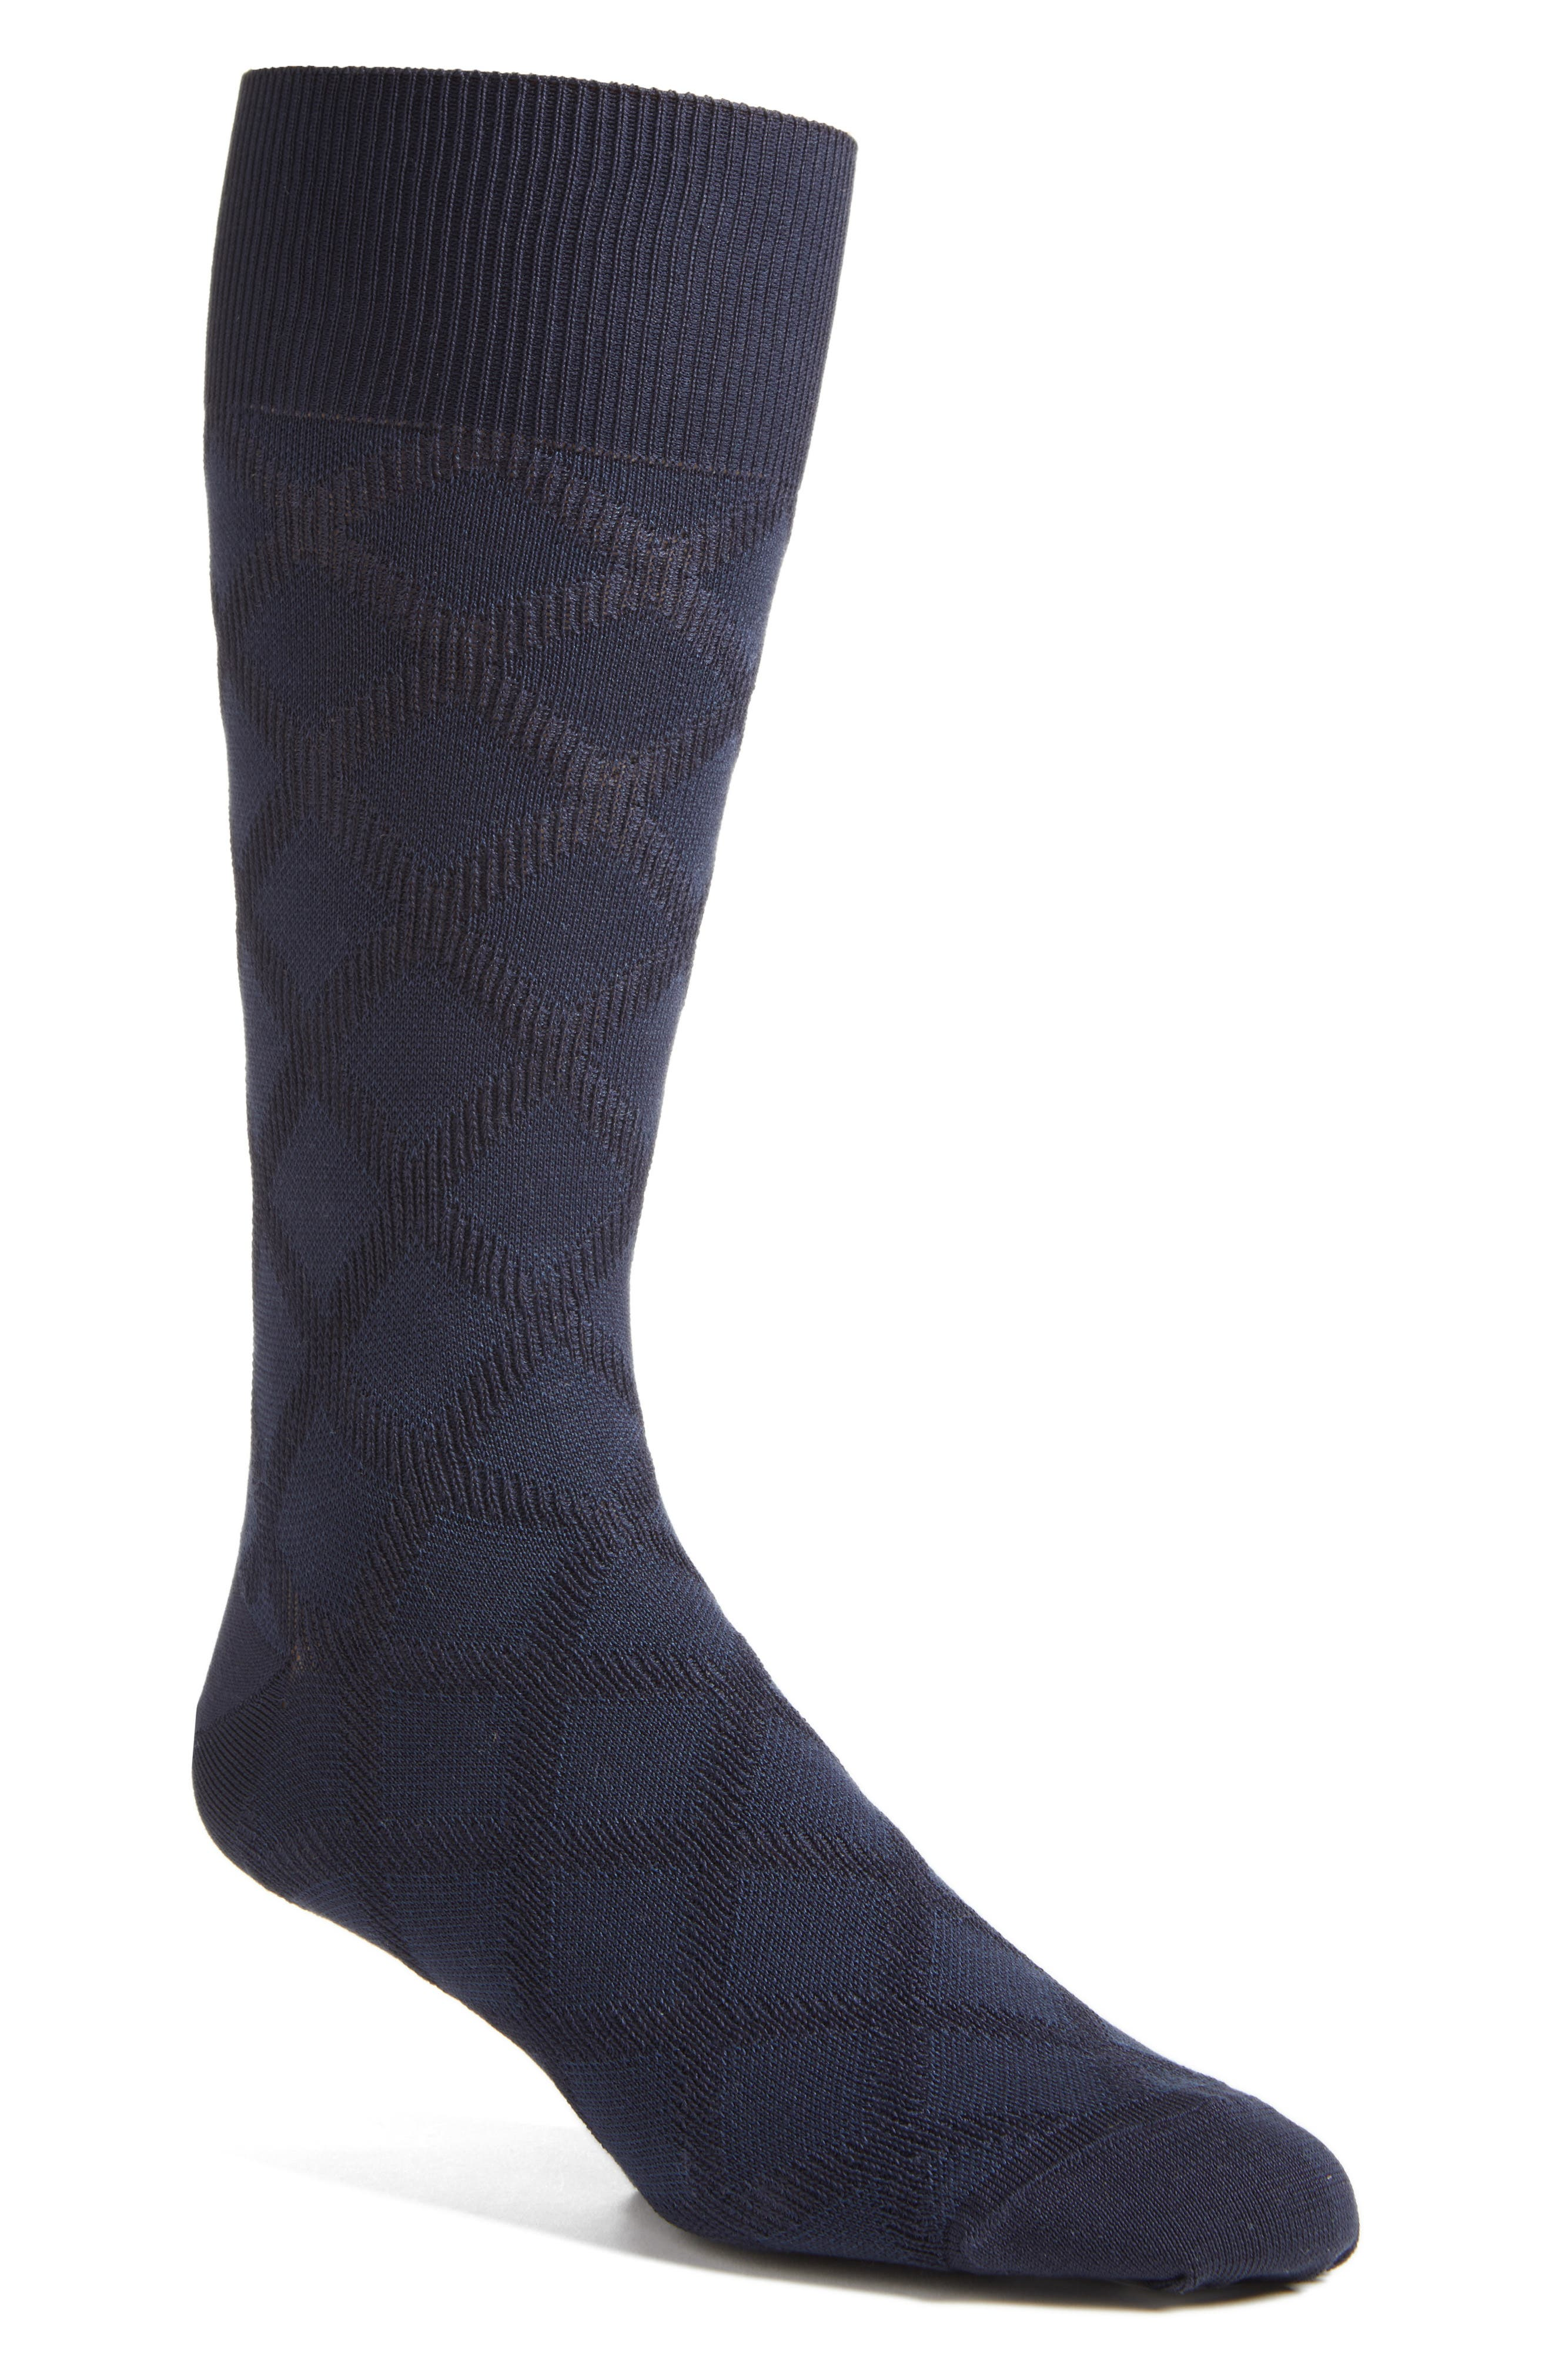 Alternate Image 1 Selected - John W. Nordstrom® Argyle Socks